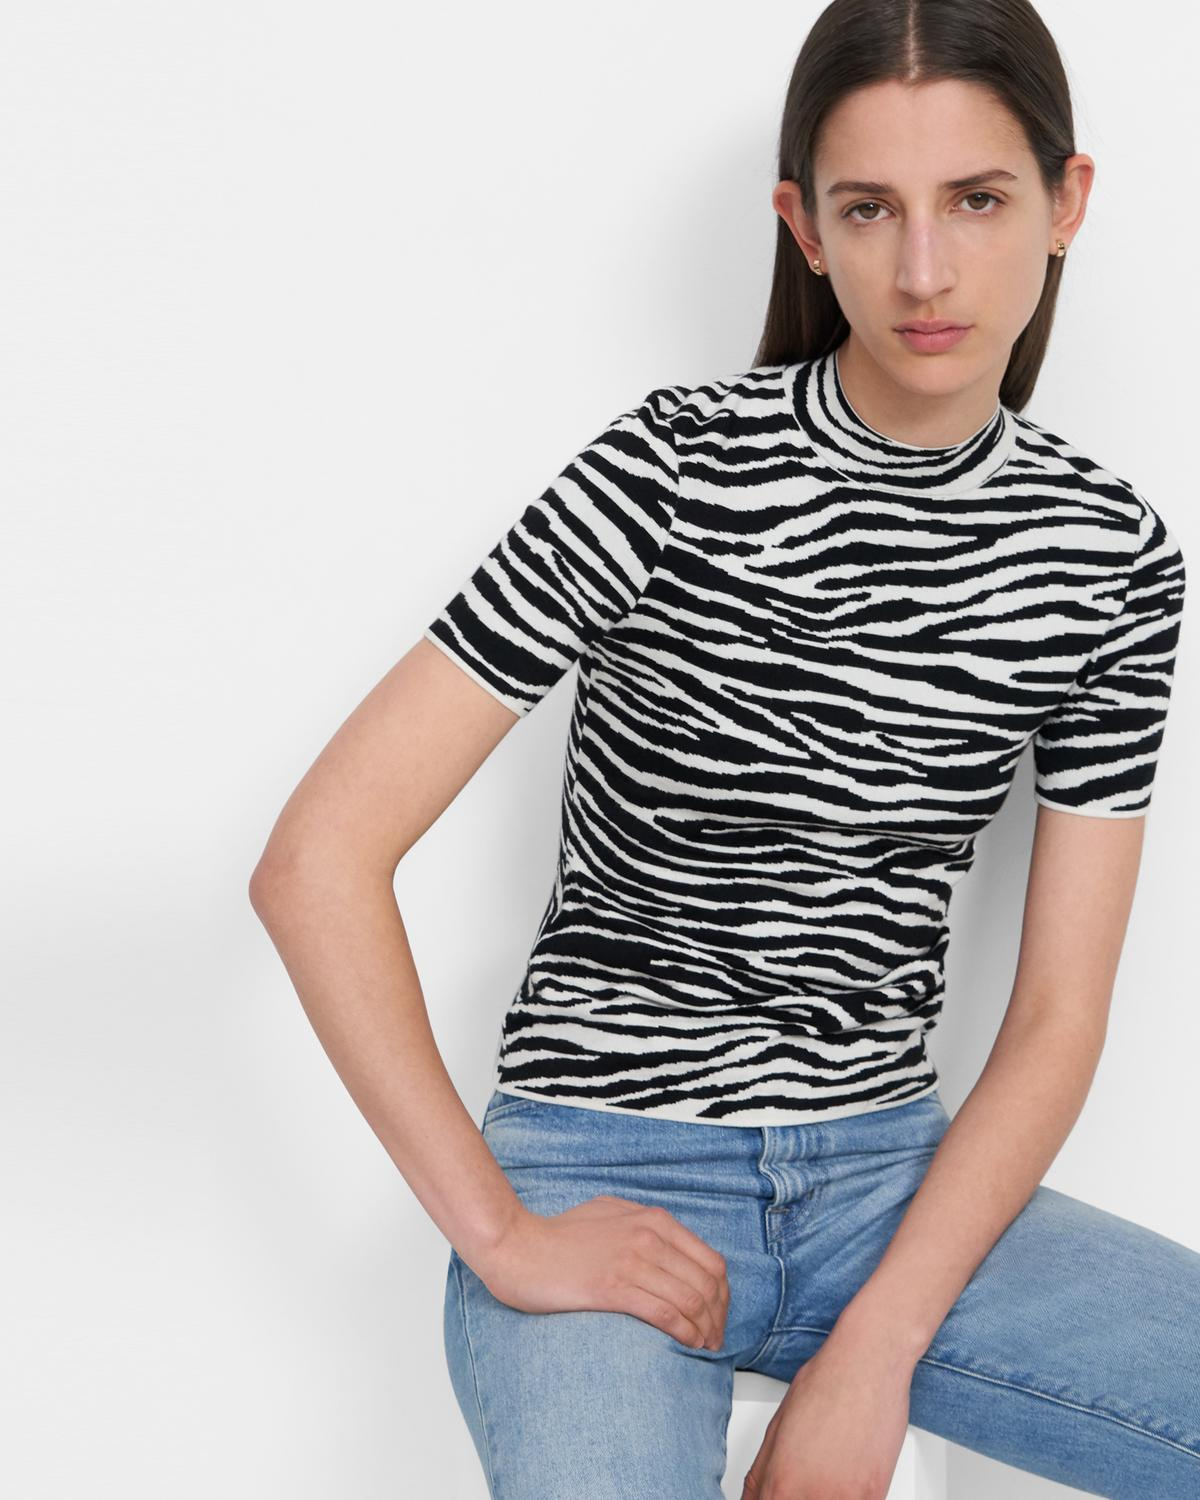 Mock Neck Sweater Tee in Zebra Knit